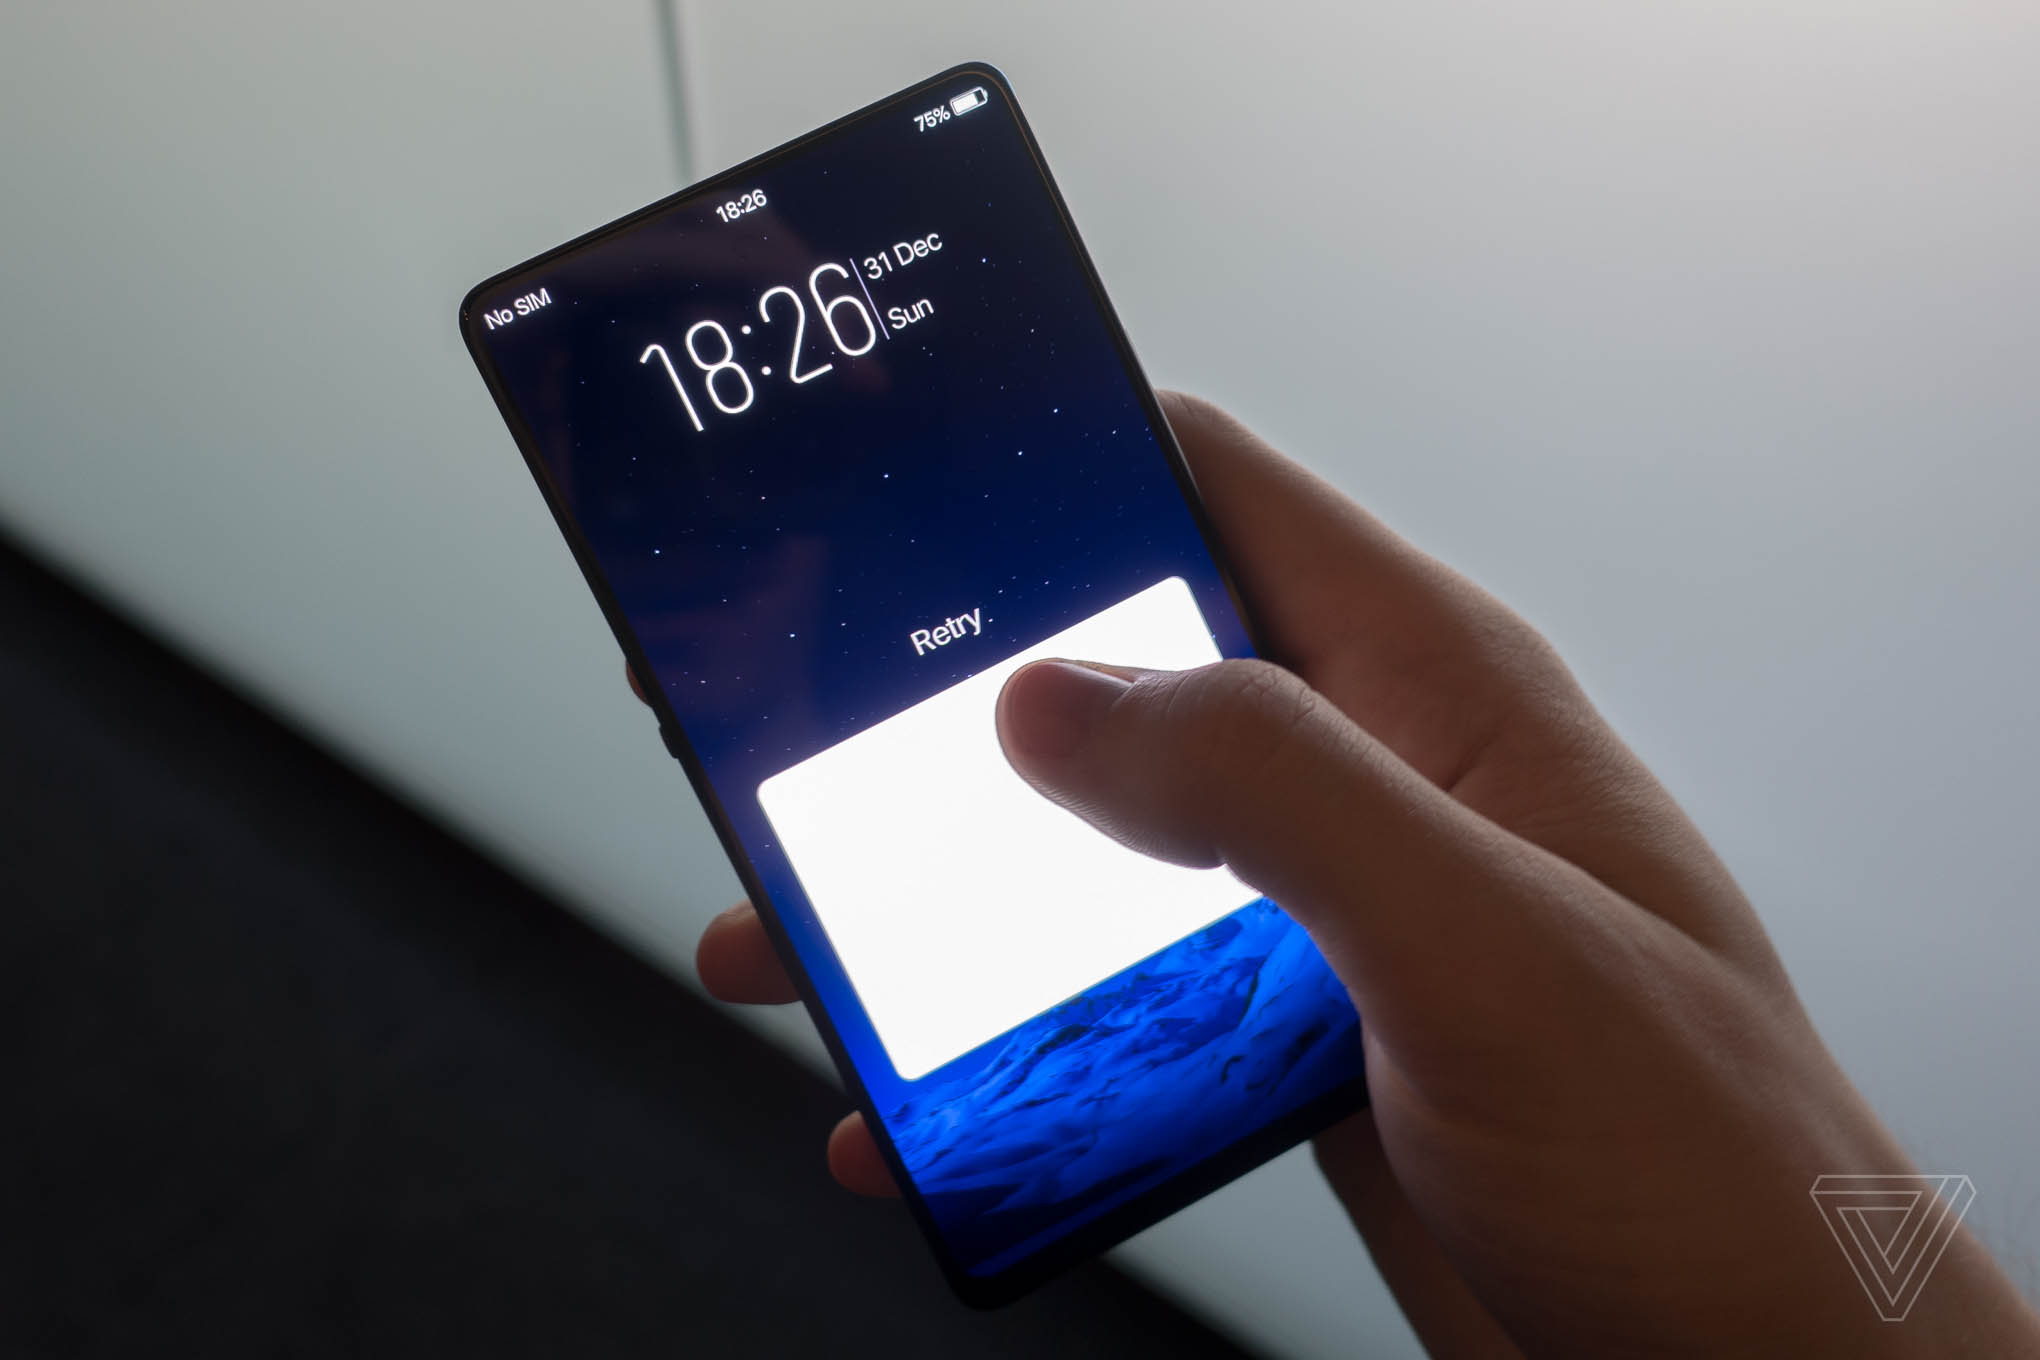 Andy Rubin shares Essential patent showing pop-up camera smartphone